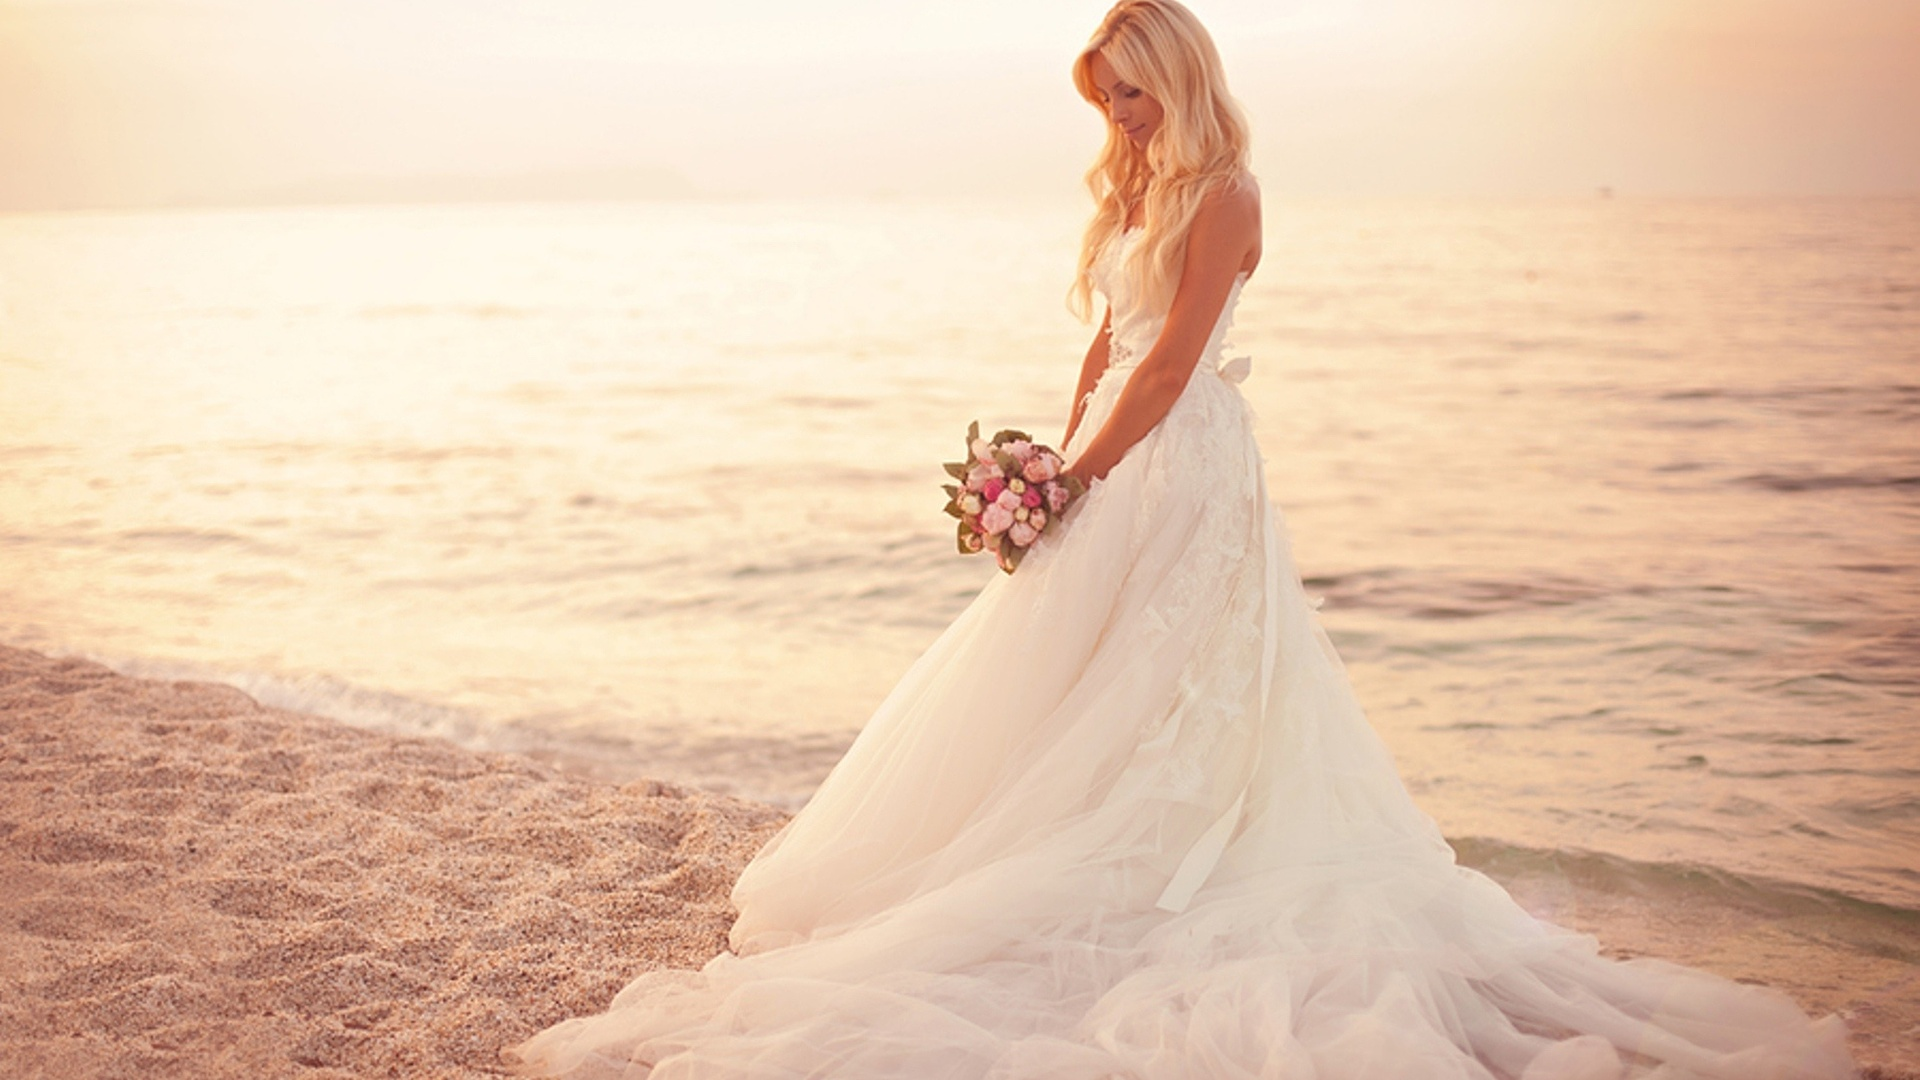 Stunning Wedding Dresses In Beige And Blush: Bride Full HD Wallpaper And Background Image